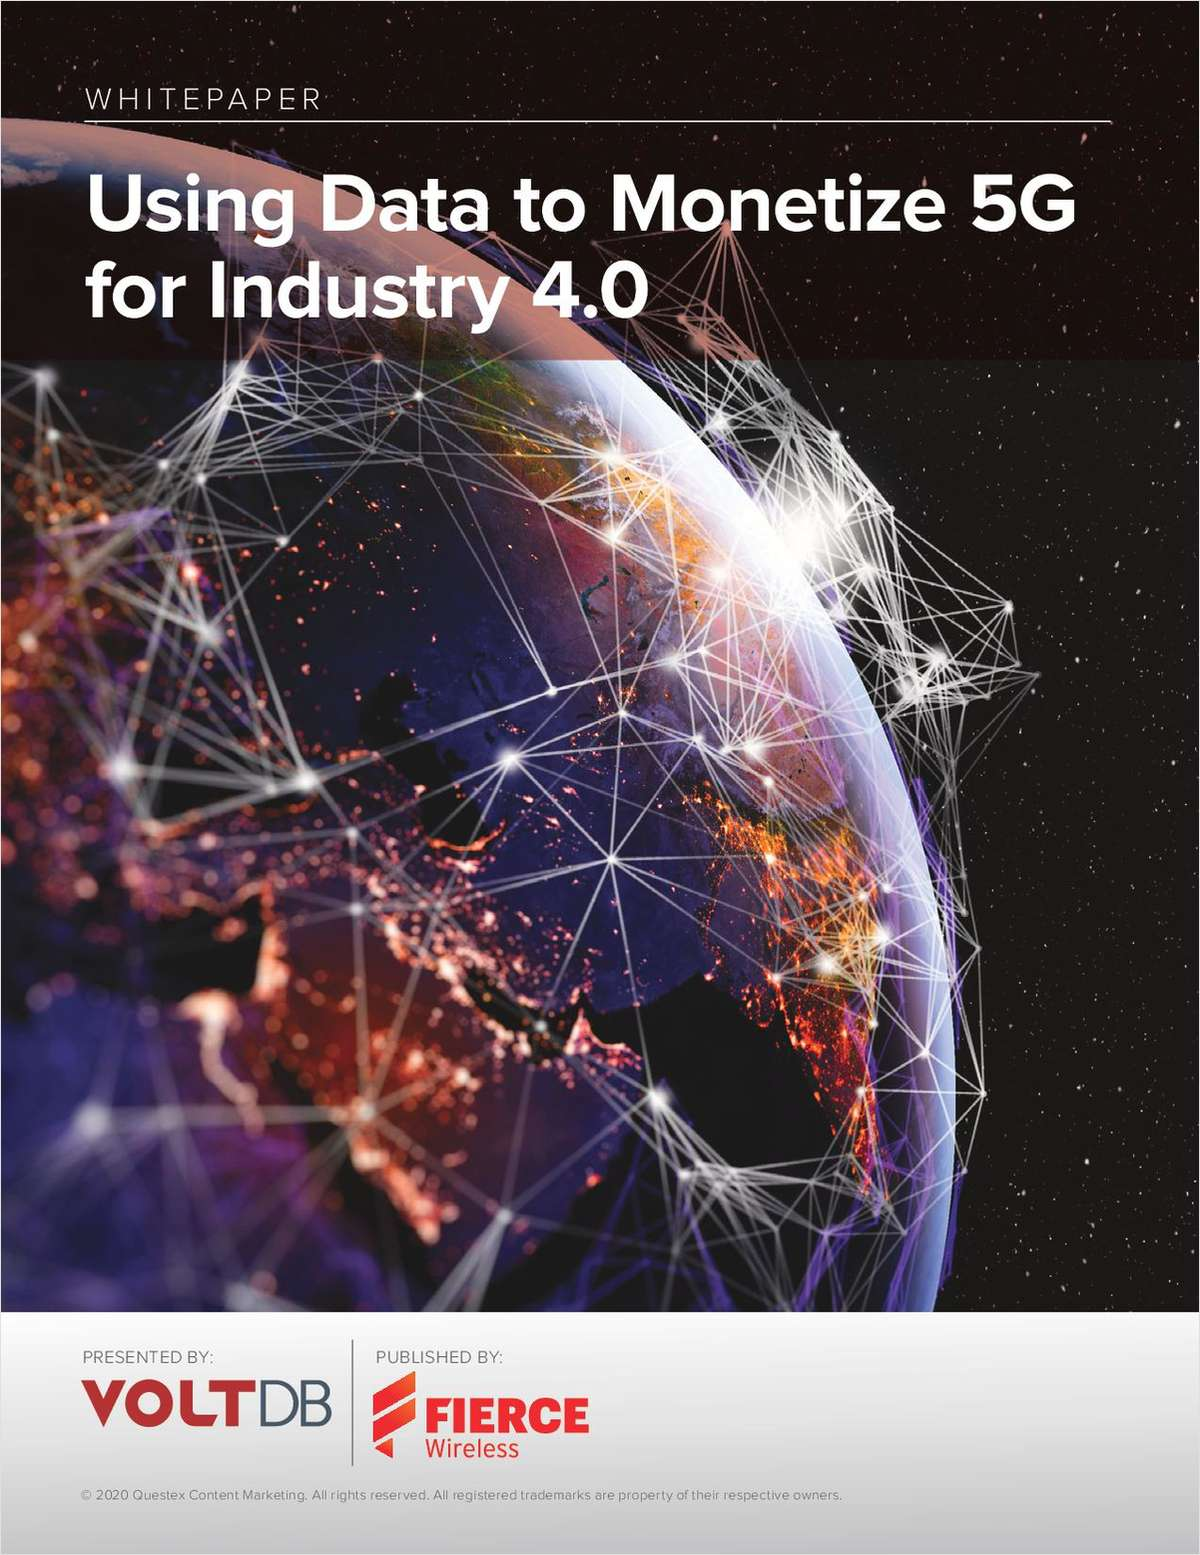 Using Data to Monetize 5G for Industry 4.0